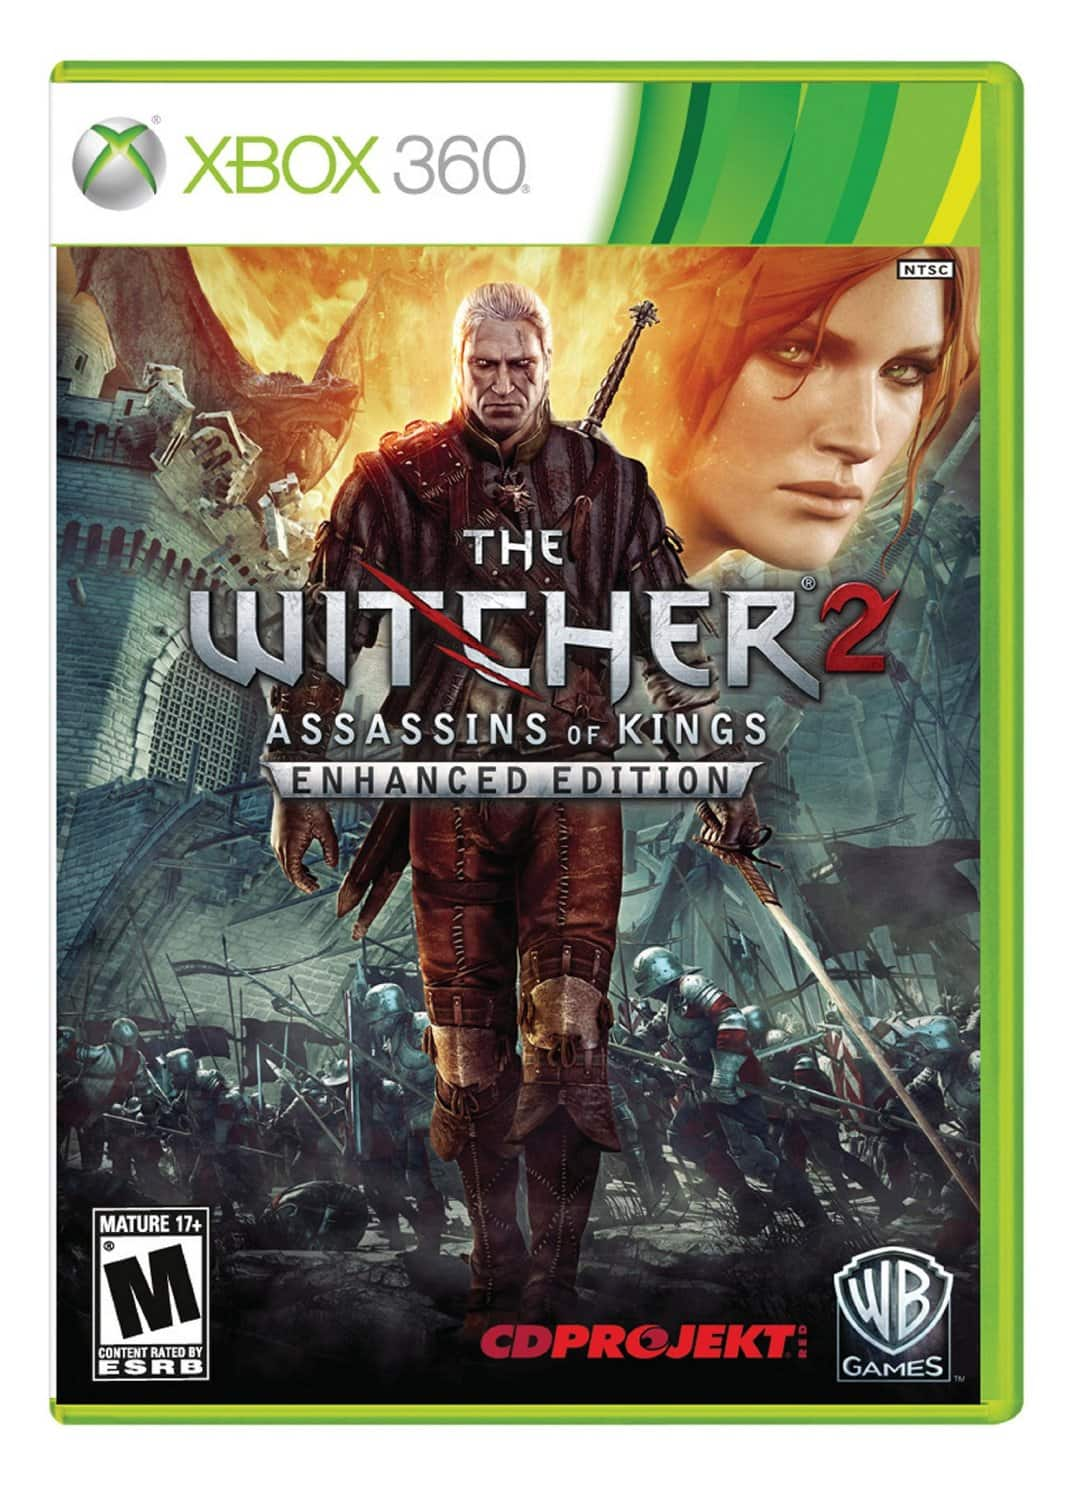 The Witcher 2: Assassins of Kings (Xbox 360 / Xbox One Download) Free for All from Jan 20 - Feb 5